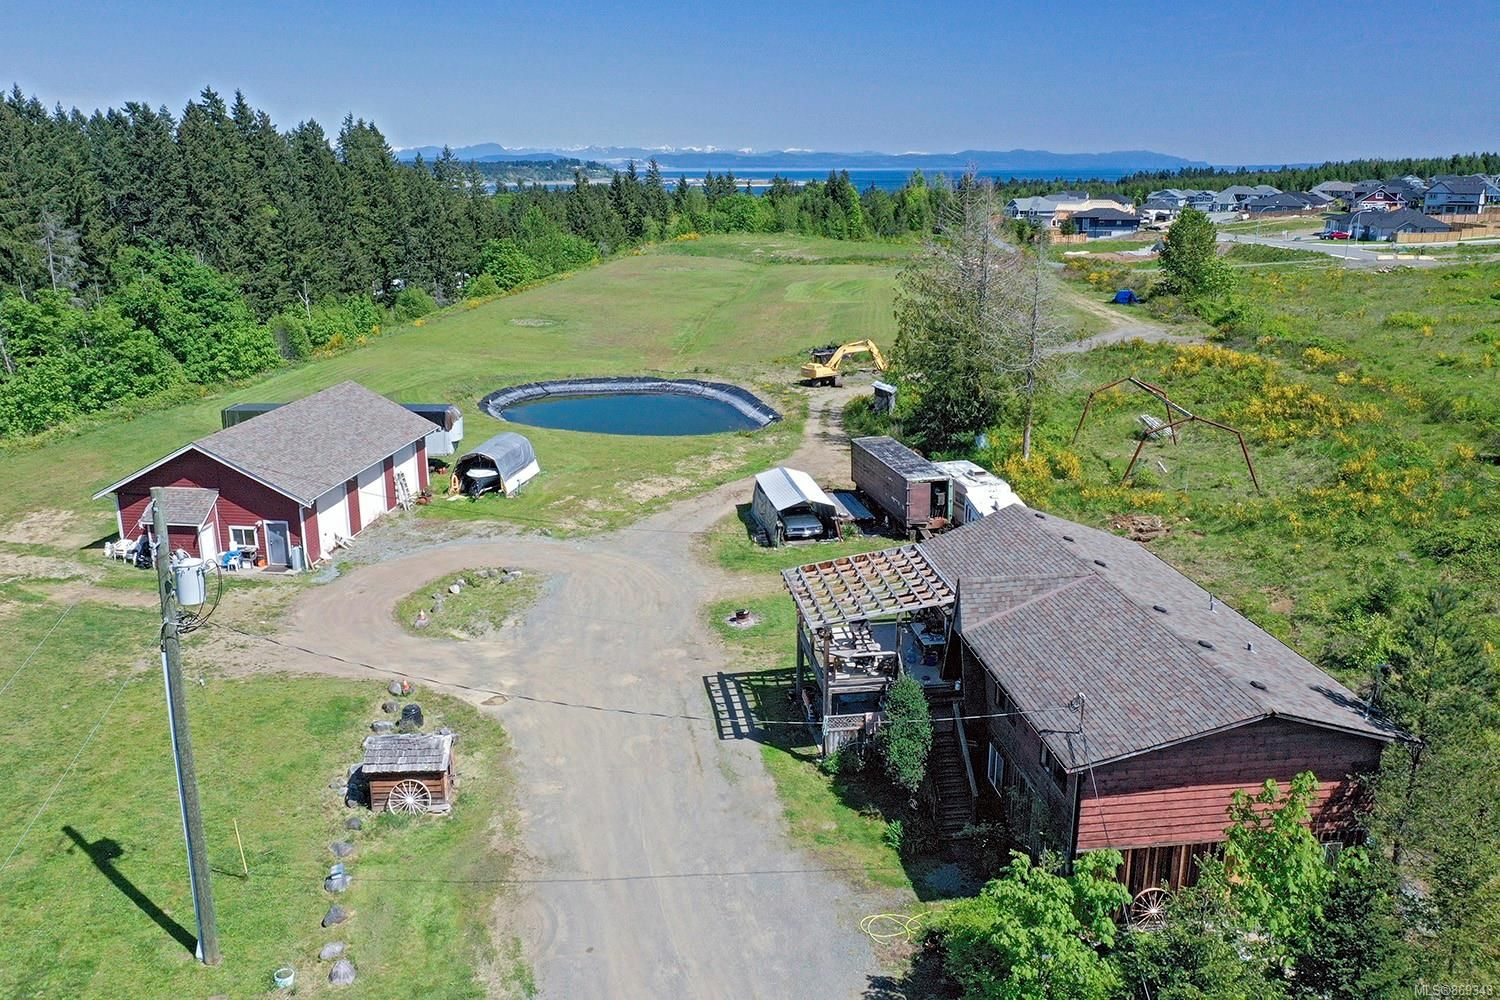 Main Photo: 4120 Fraser Rd in : CV Courtenay South House for sale (Comox Valley)  : MLS®# 869343